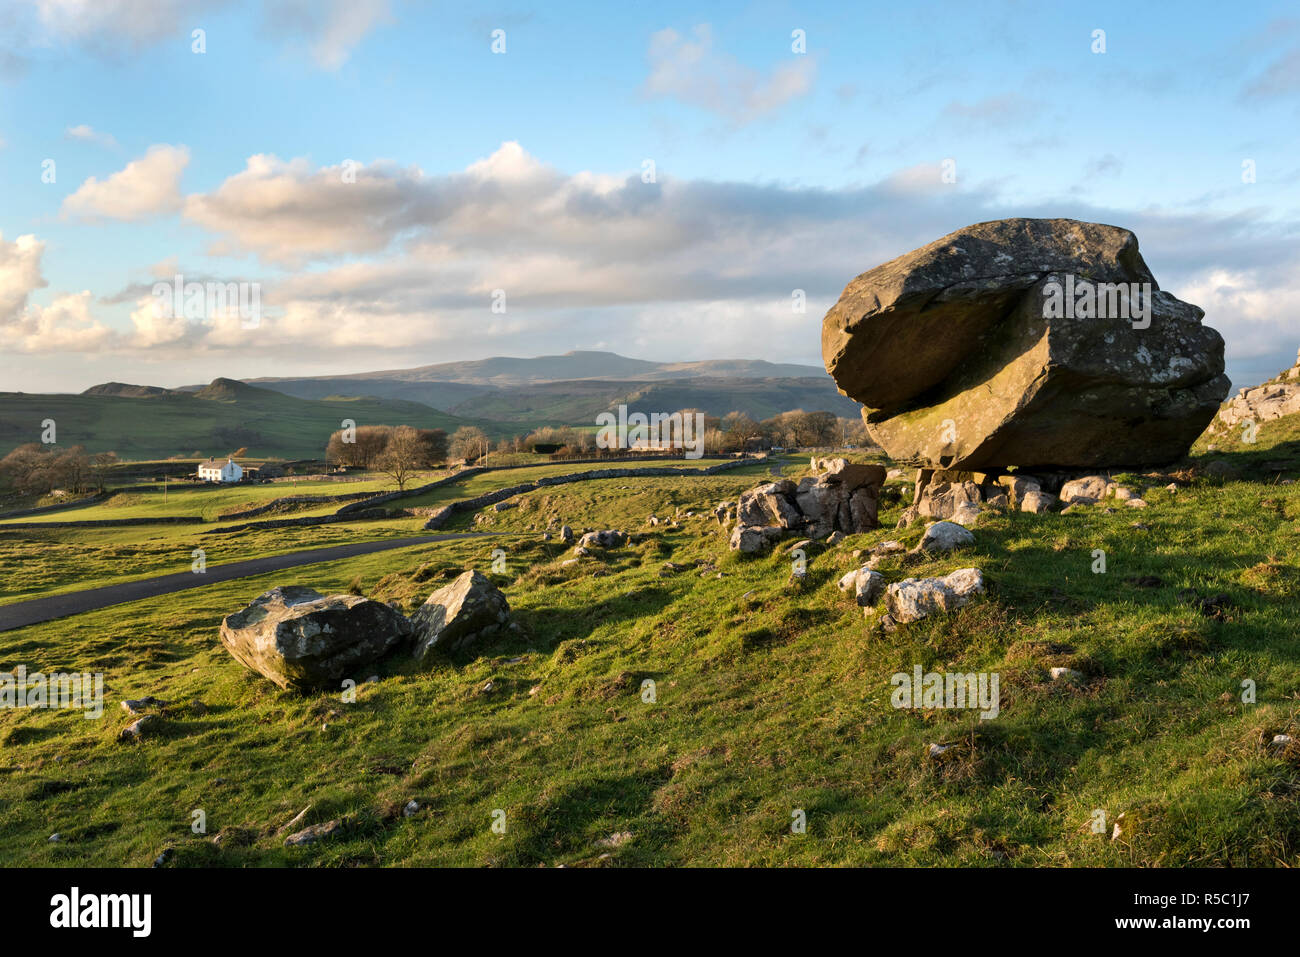 Samson's Toe, a glacial erratic boulder, at Winskill Stones, Langcliffe, Yorkshire Dales National Park - Stock Image